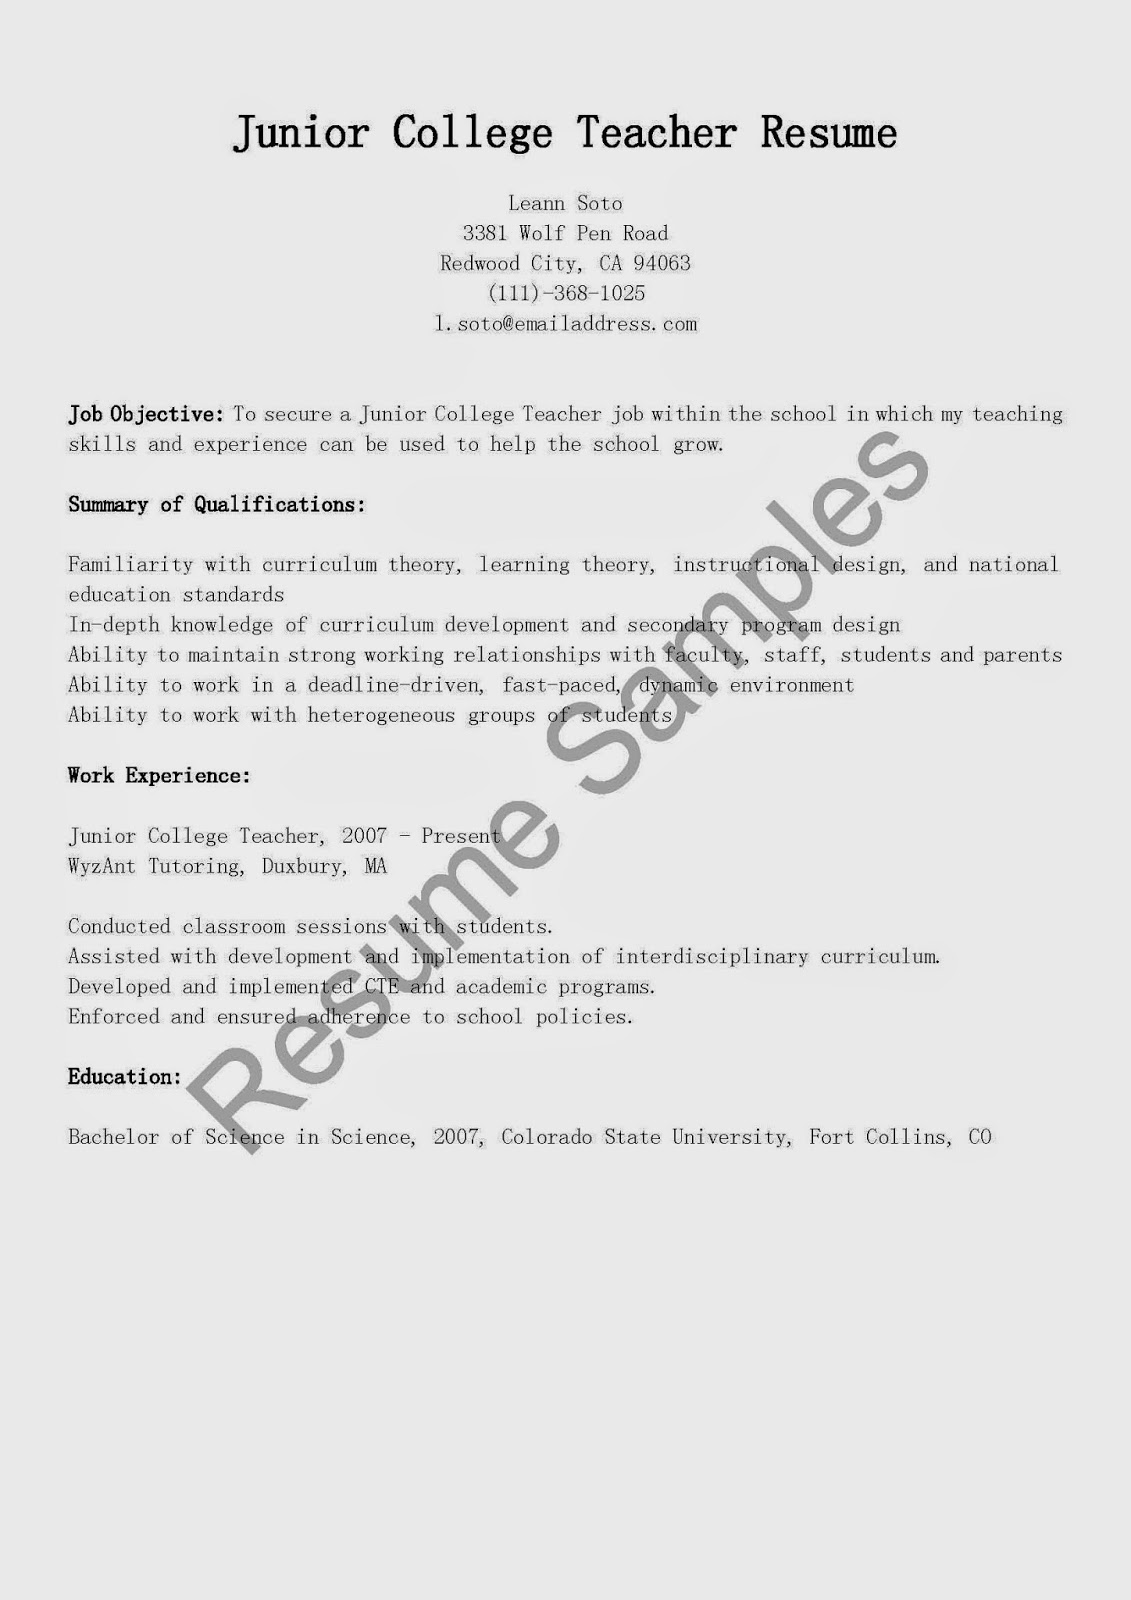 Teachers Resume Teacher Resume Samples Amp Writing Guide Genius SlideShare Teacher  Resume Skills Examples Skills Resume  Skills For Teacher Resume